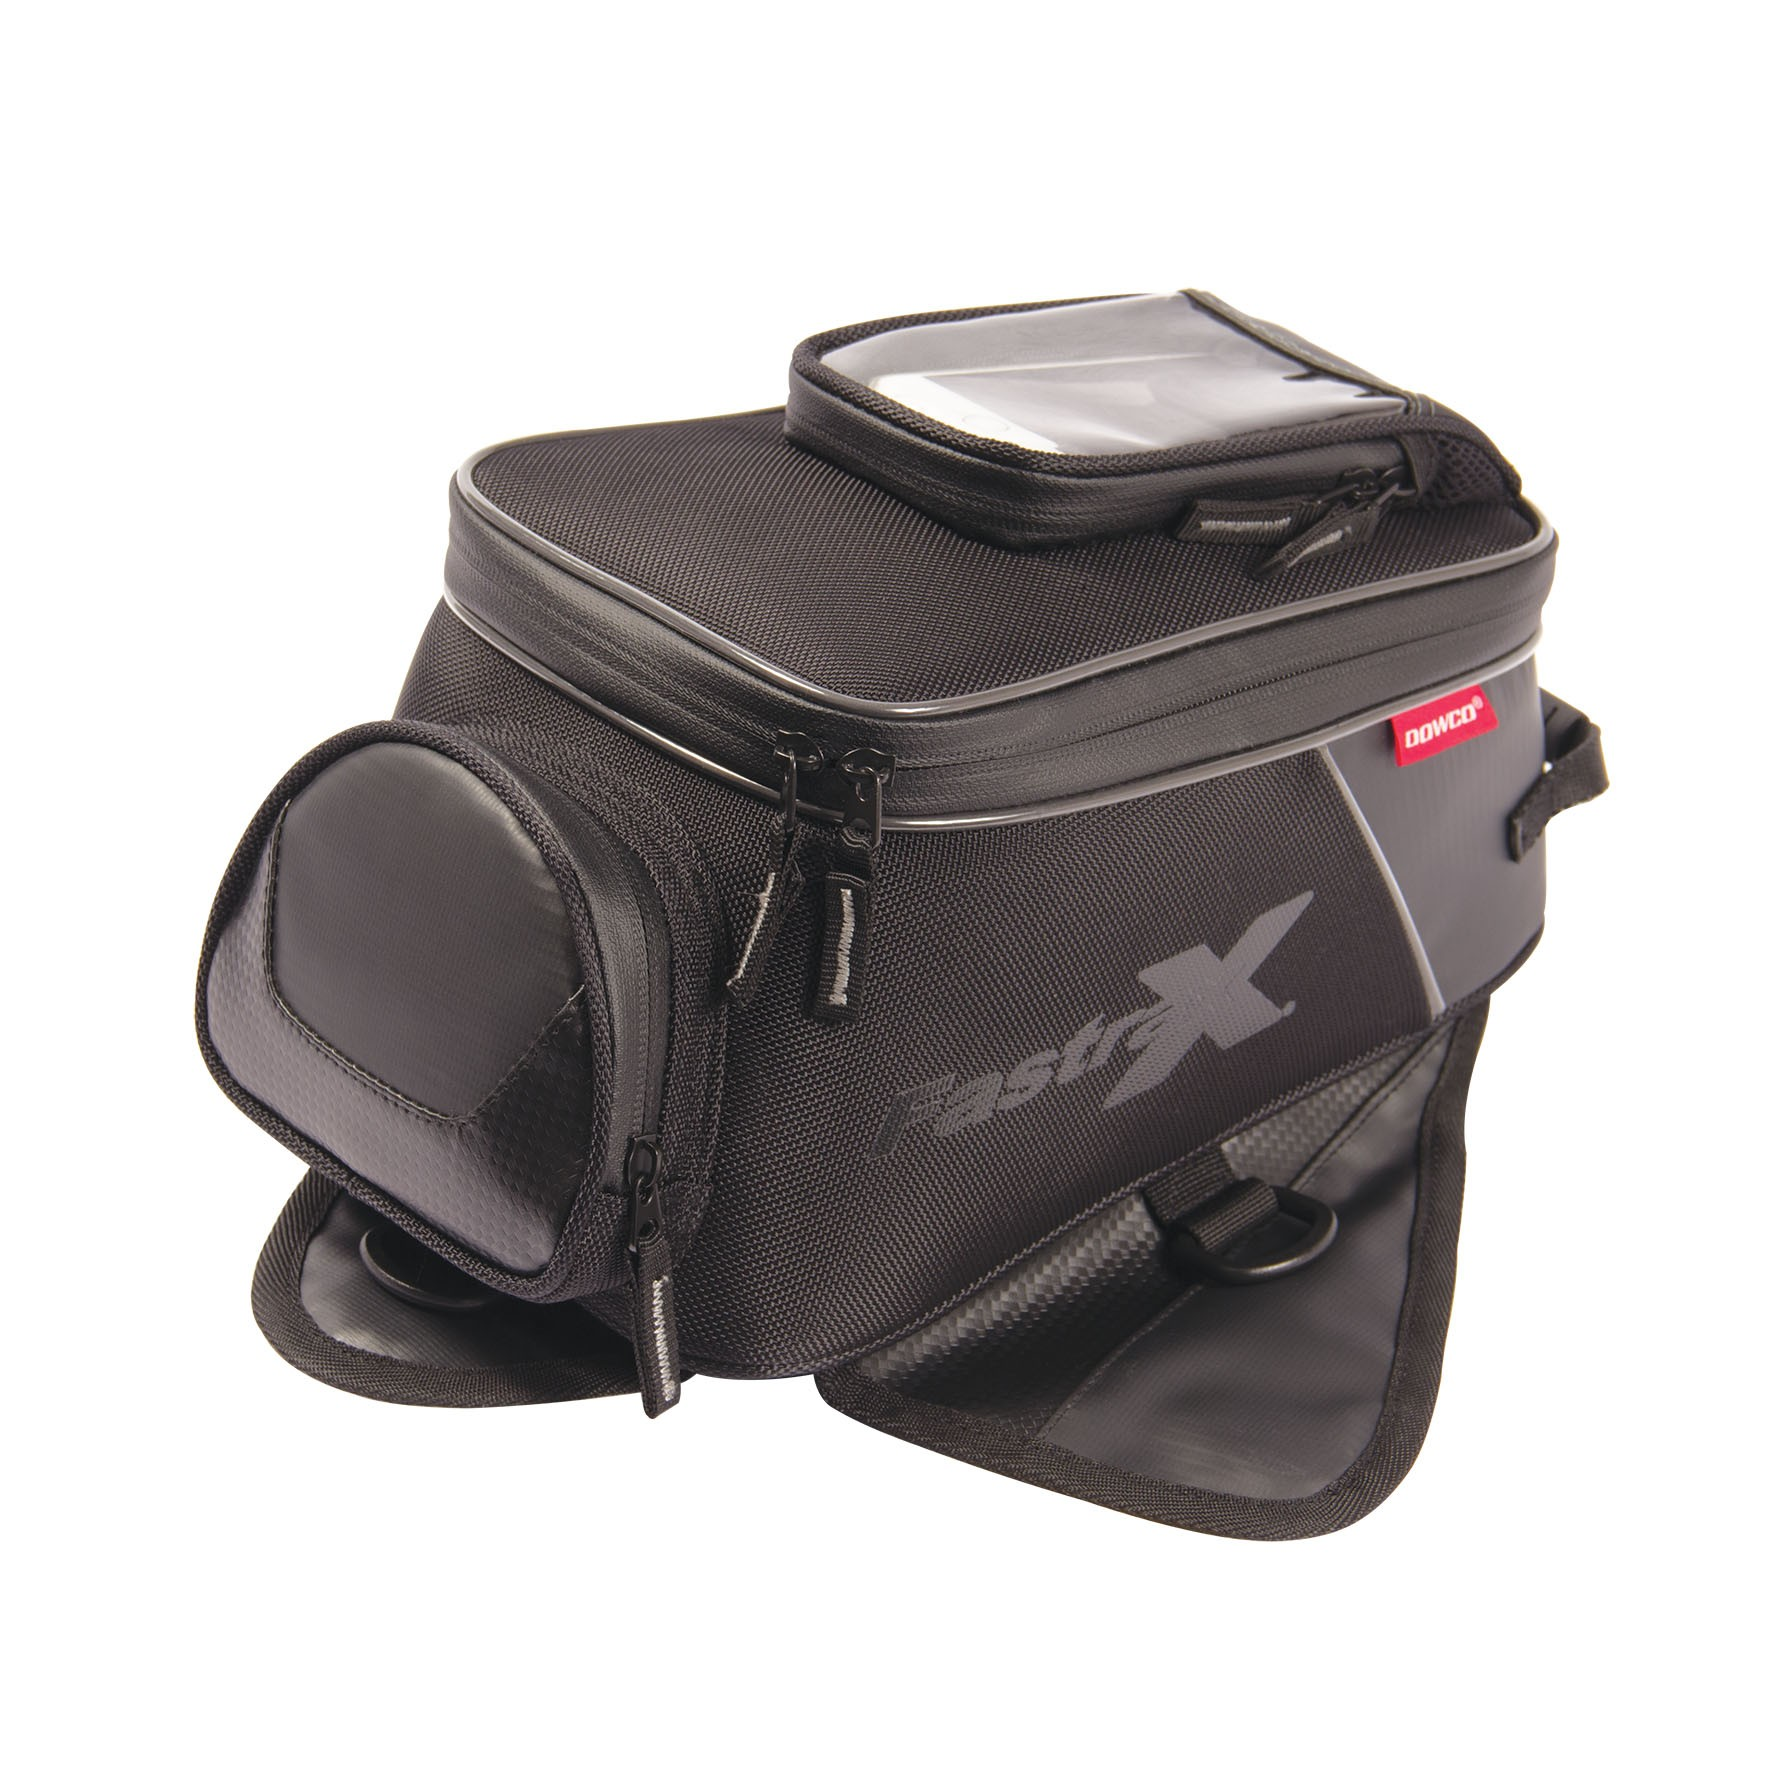 Dowco Fastrax Backroads Small Motorcycle Tank Bag